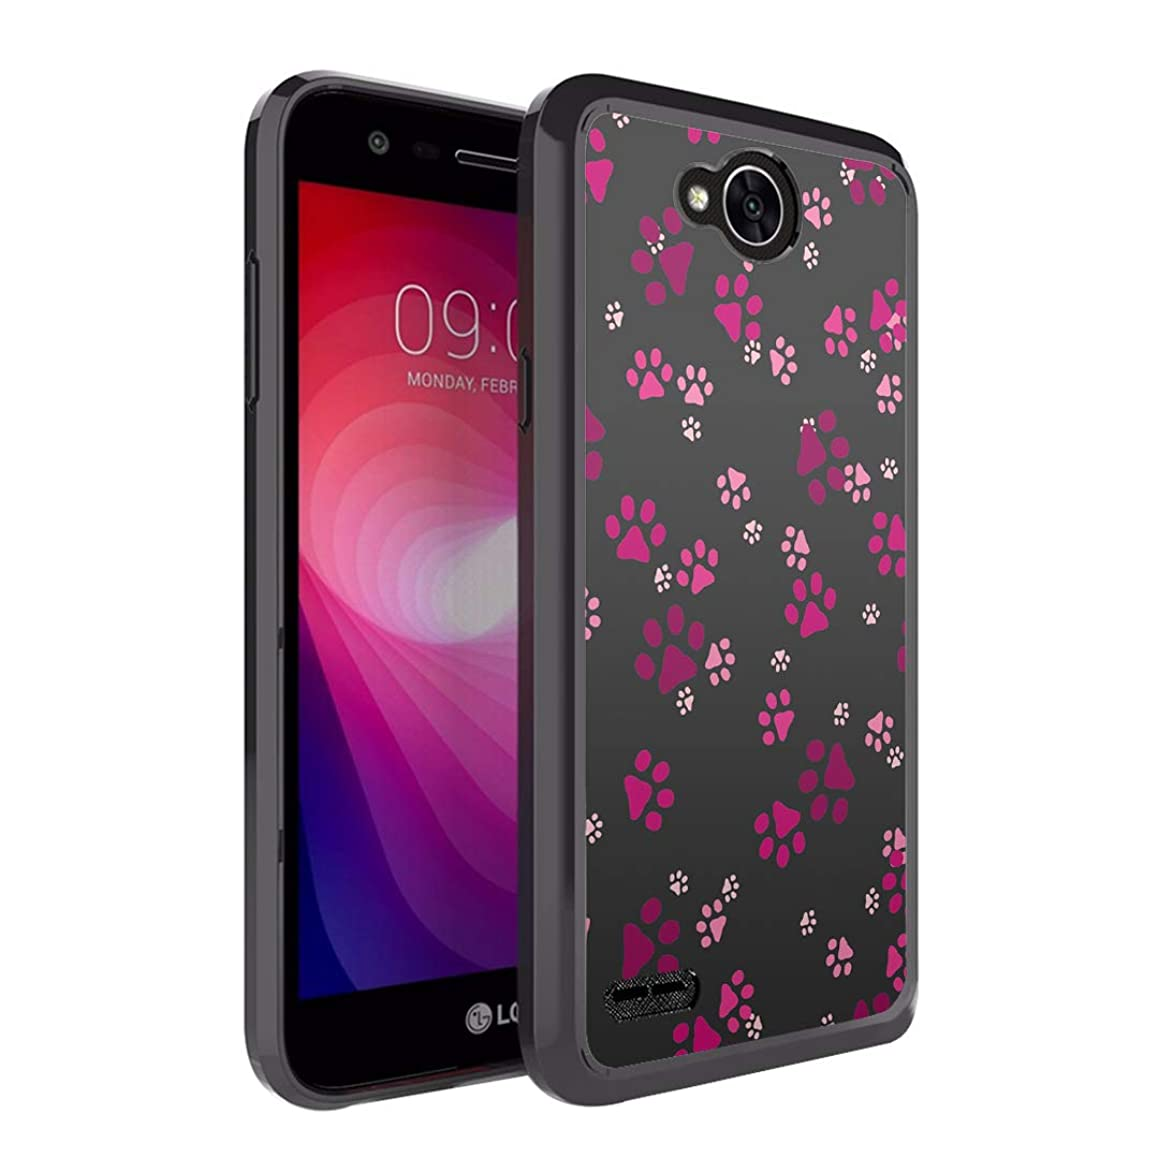 Moriko Case Compatible with LG Fiesta 2, LG X Power 2, LG X Charge, Fiesta LTE, K10 Power, LS7 4G LTE [Drop Protection Slim Bumper Case Black] for LG X Power 2 - (Paw Print Pink)